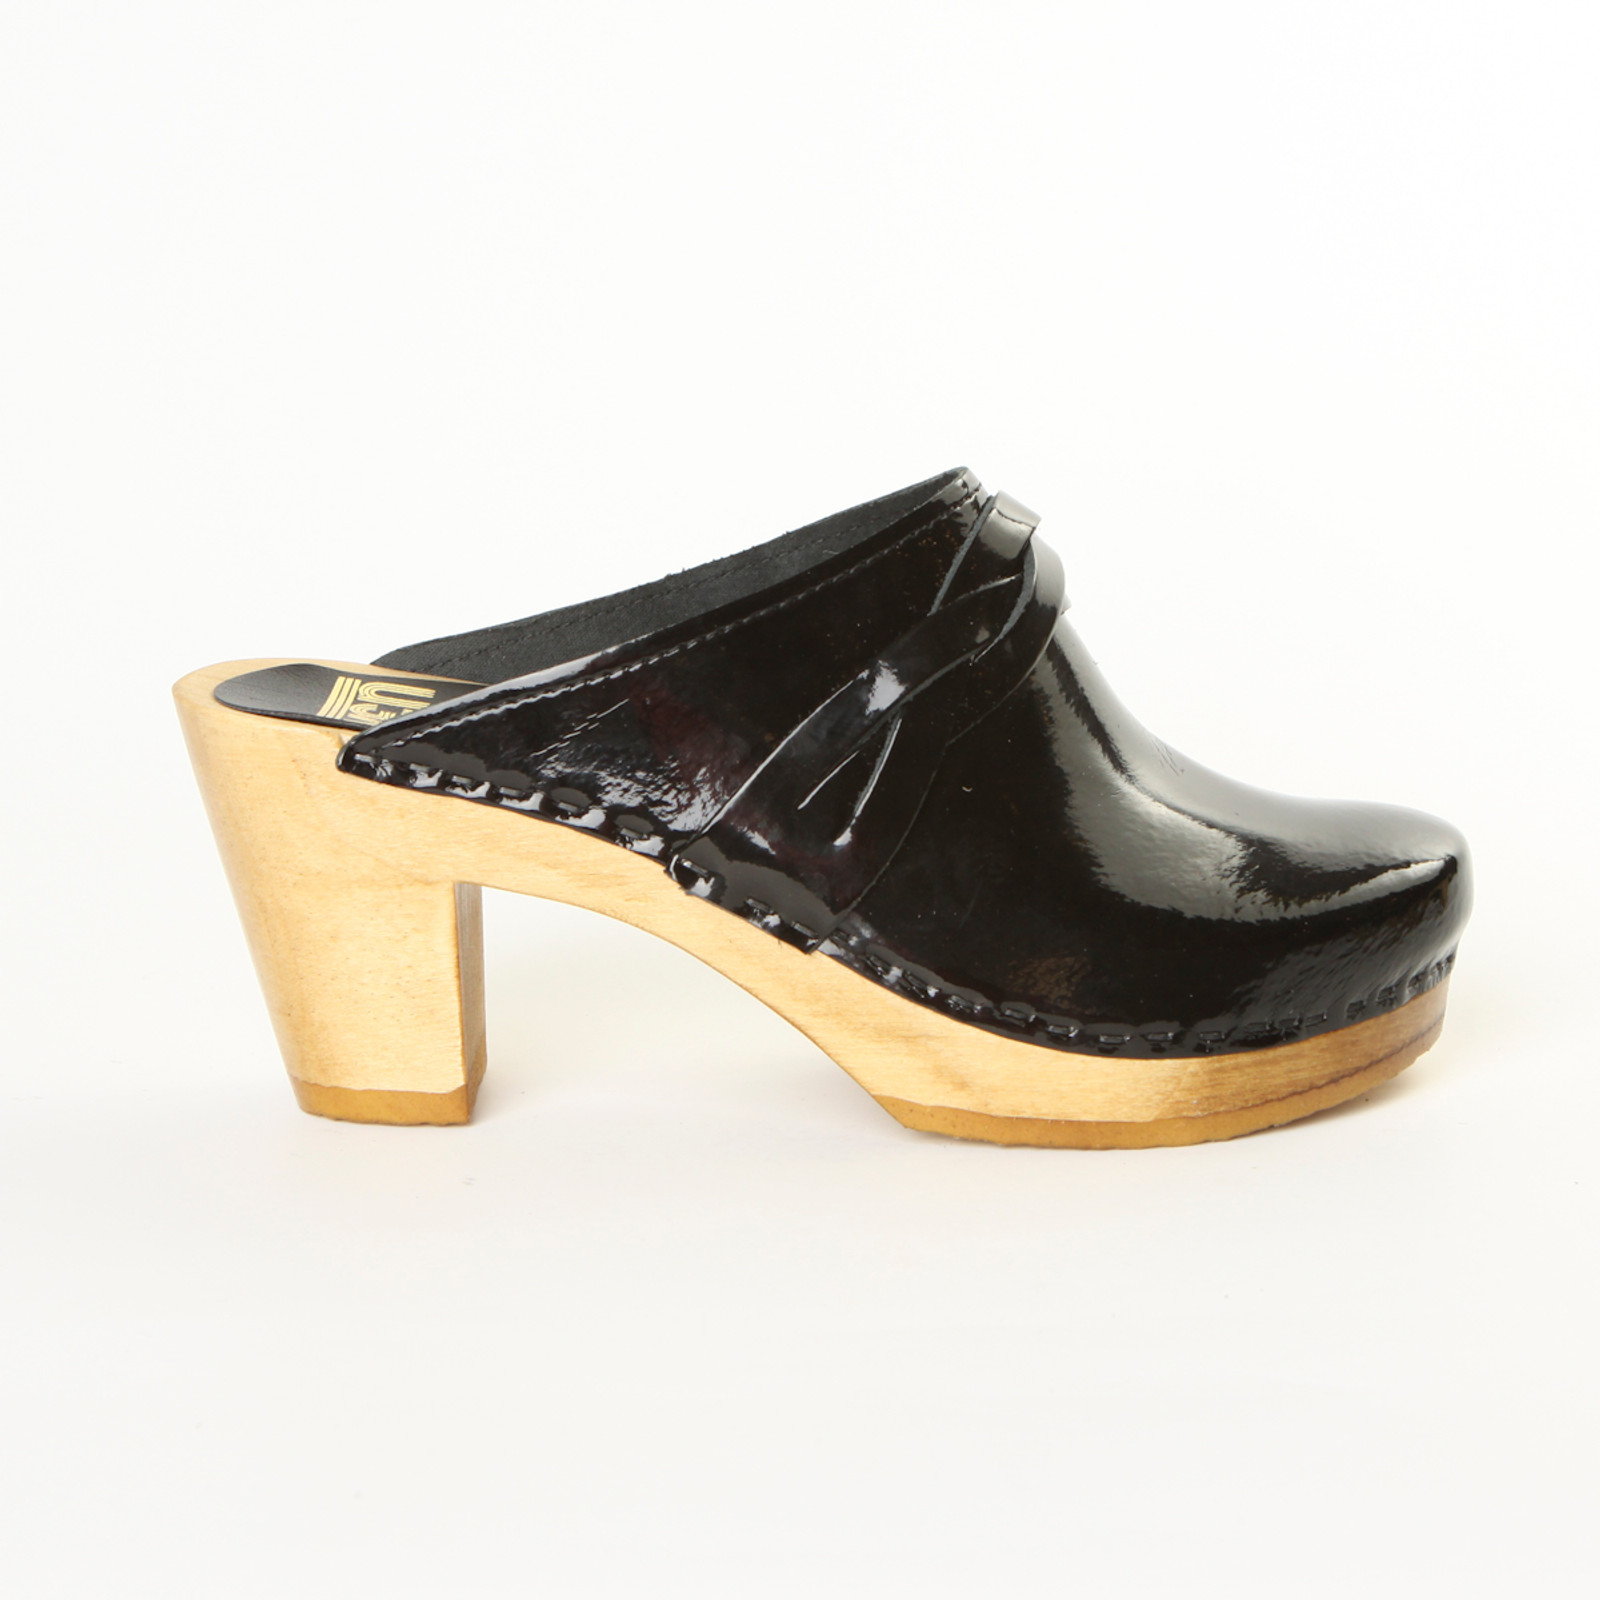 Black Patent Leather with Brown Base